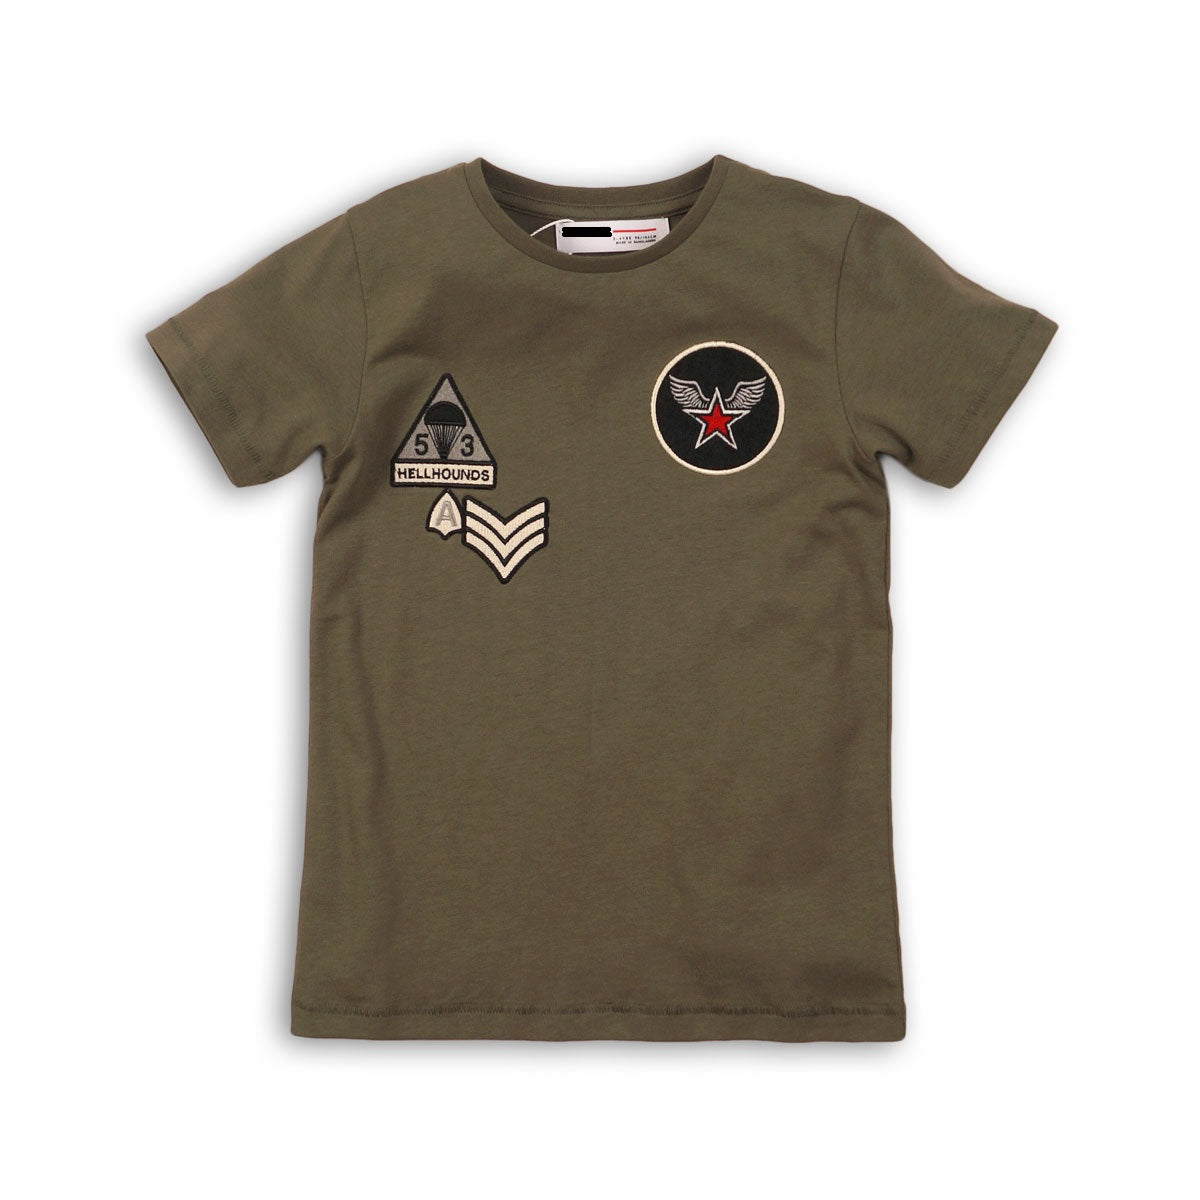 Boys Tee With Badge's